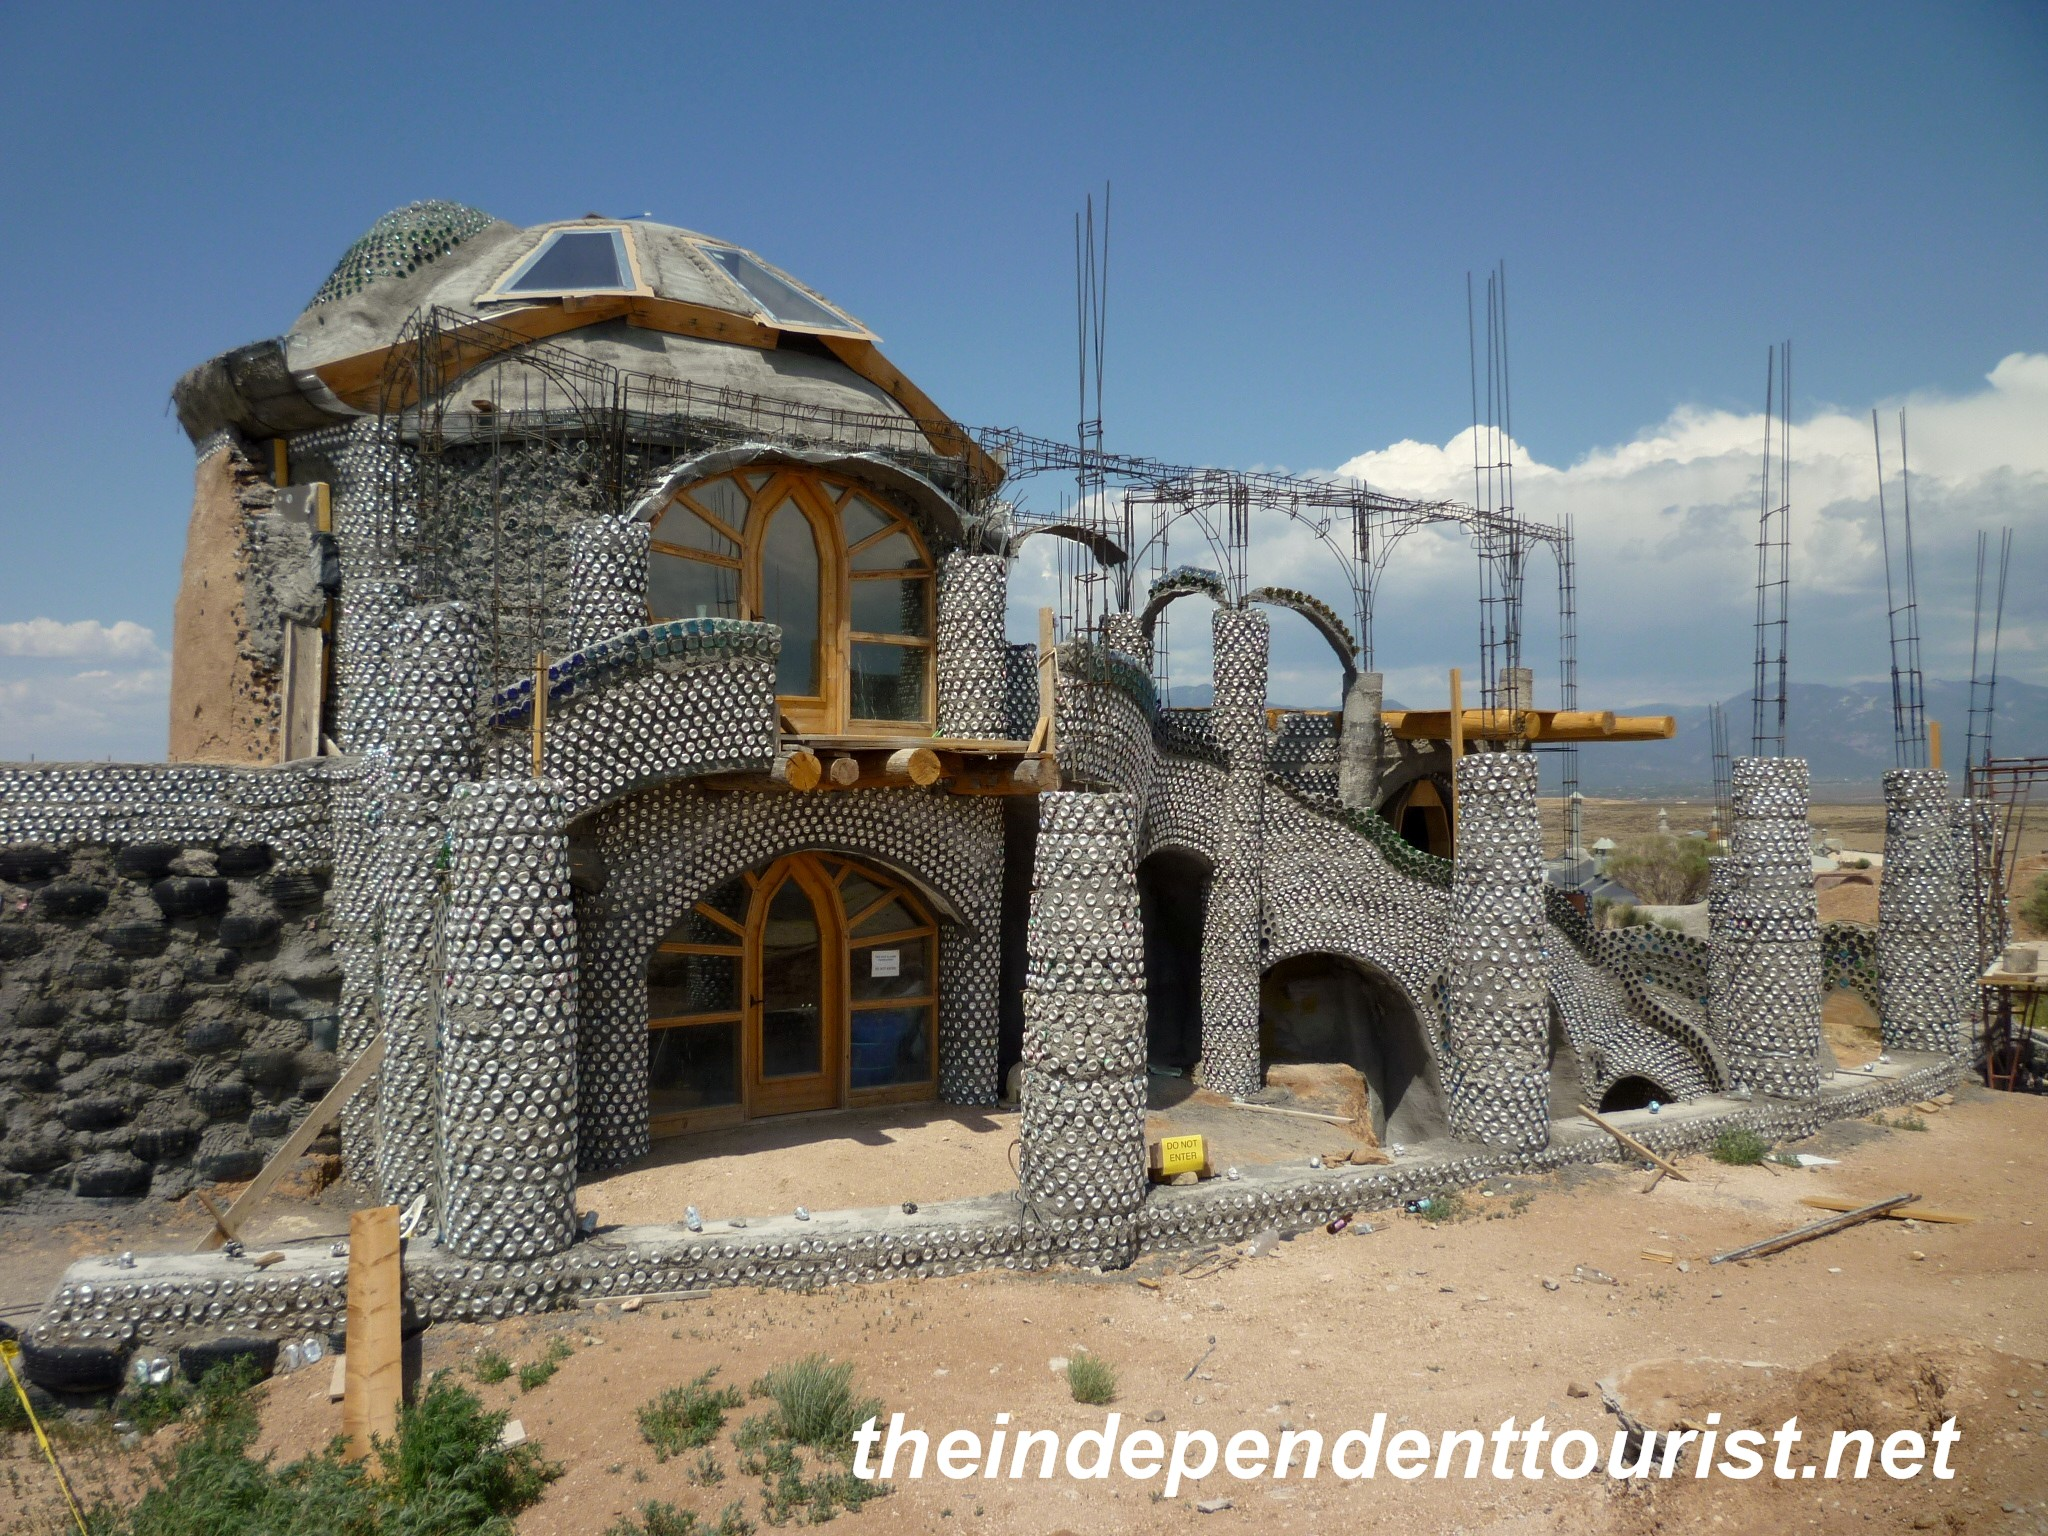 Earthship Sustainable Housing 18 The Independent Tourist